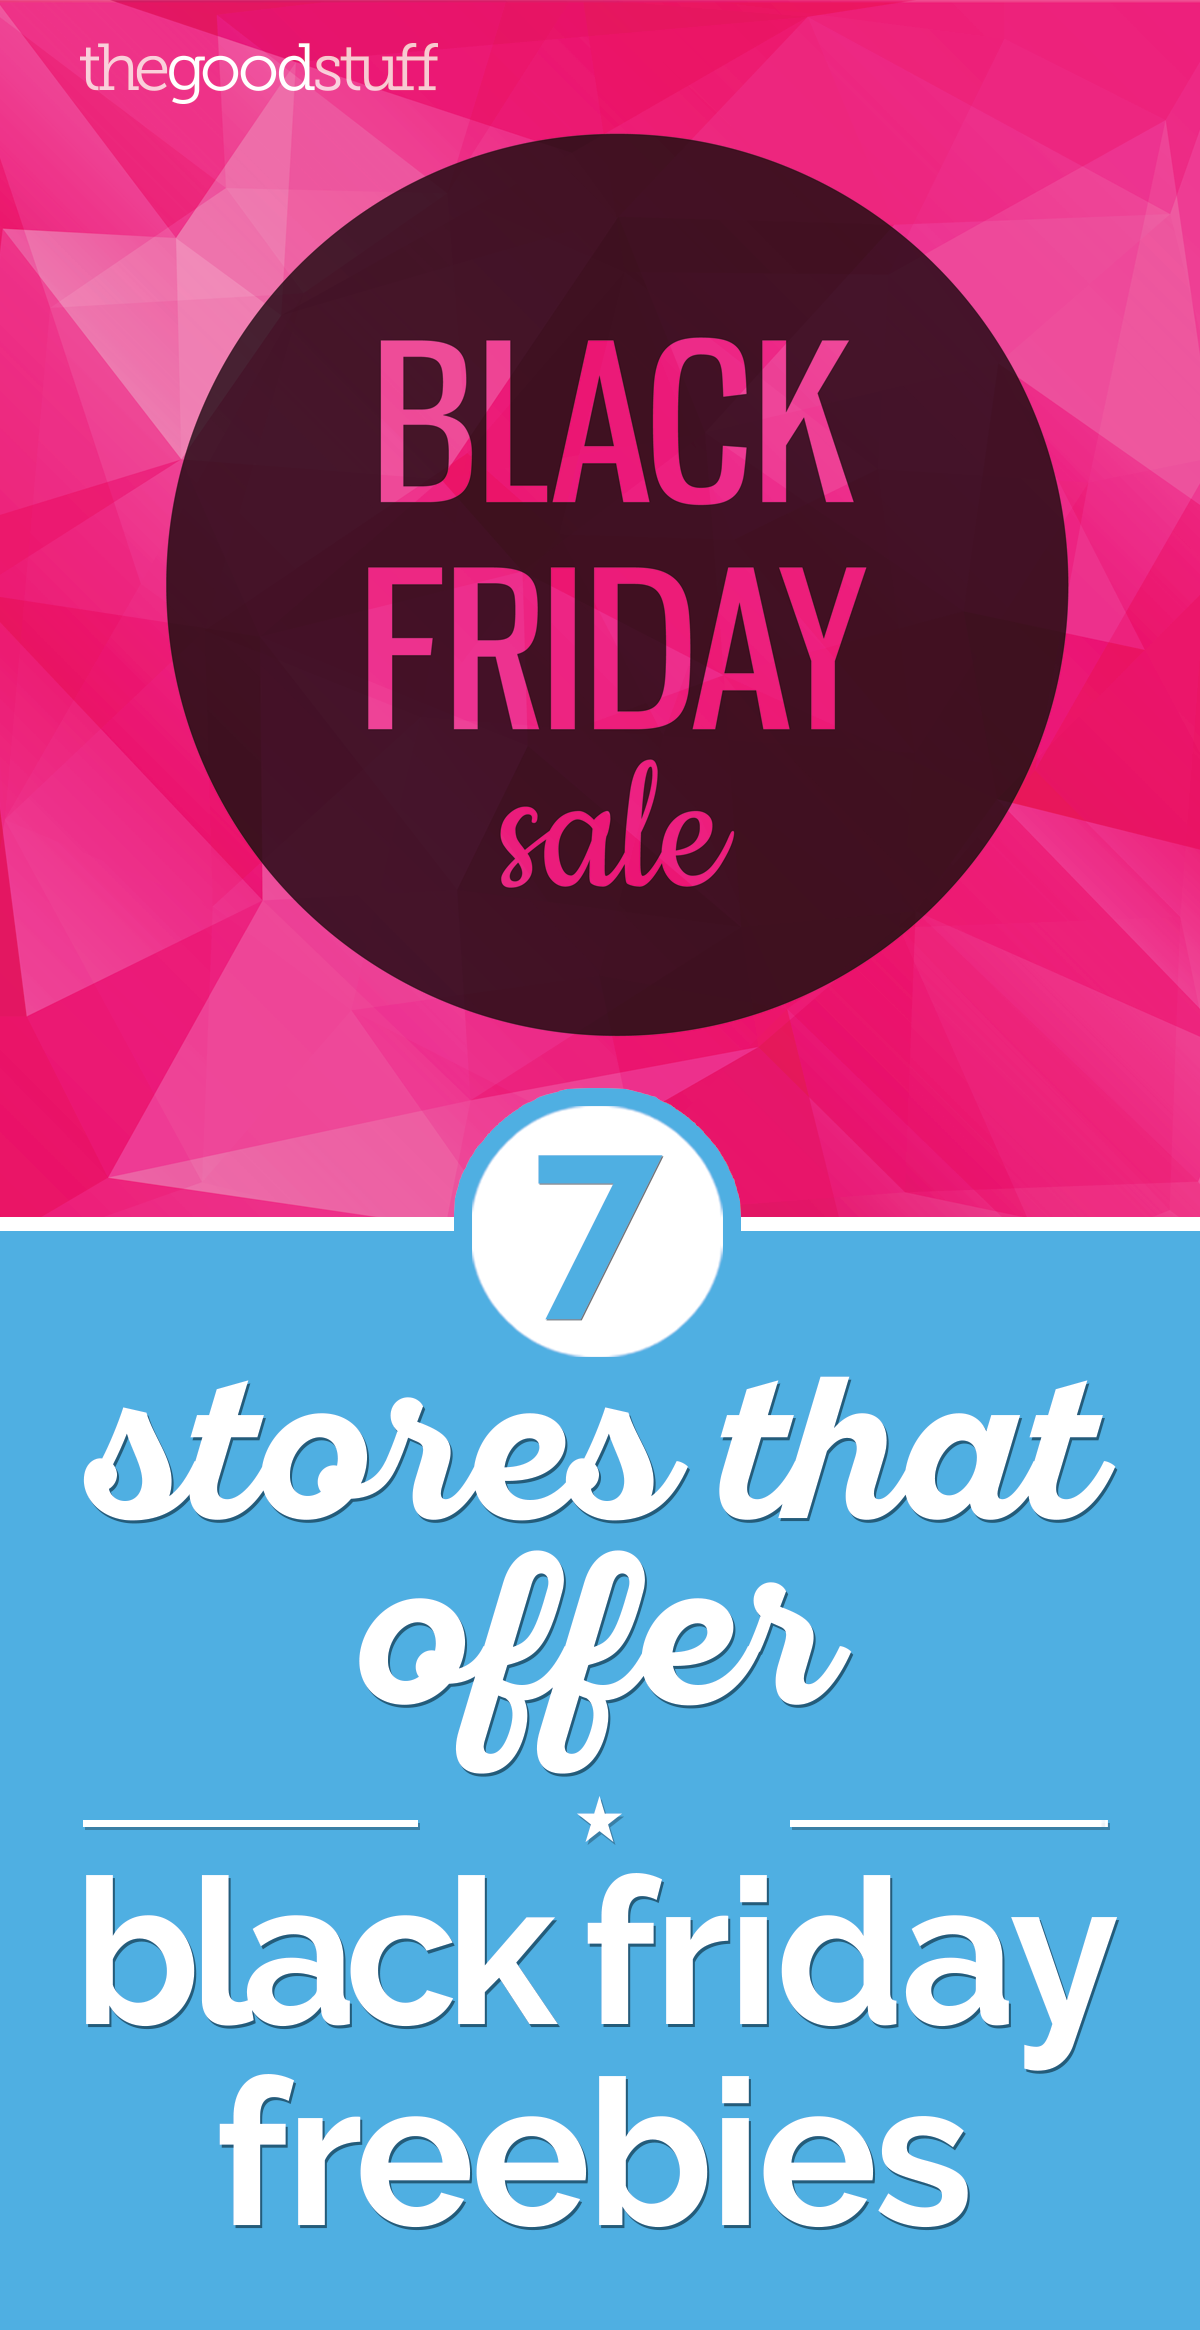 7 Stores That Offer Black Friday Freebies   thegoodstuff